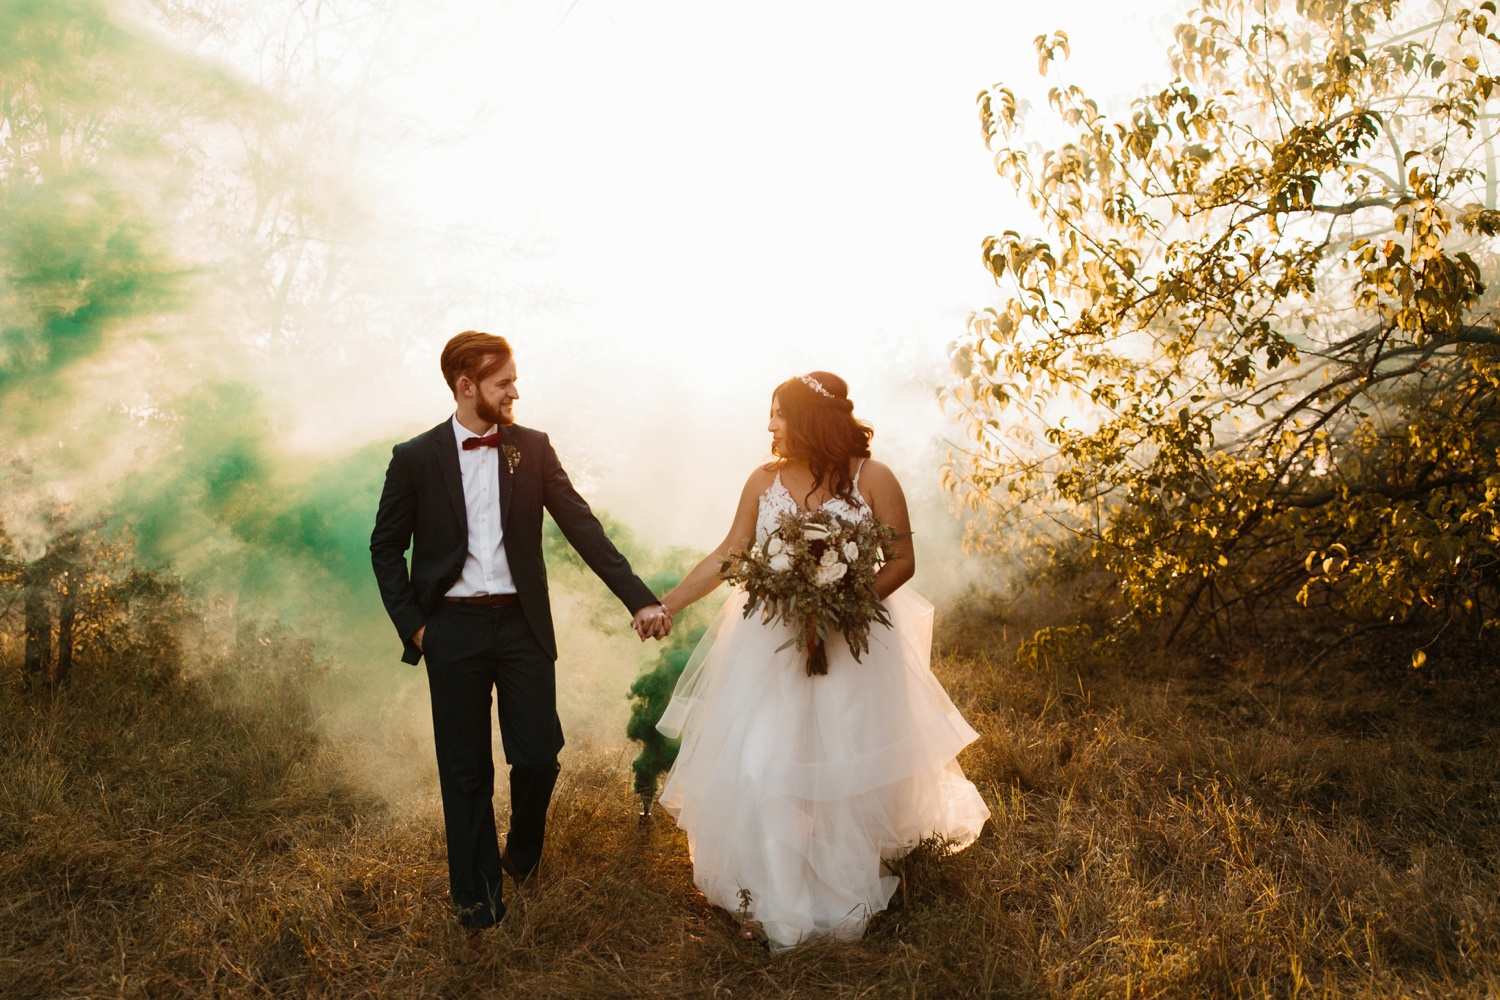 Grant + Lysette | a vibrant, deep burgundy and navy, and mixed metals wedding at Hidden Pines Chapel by North Texas Wedding Photographer Rachel Meagan Photography 224